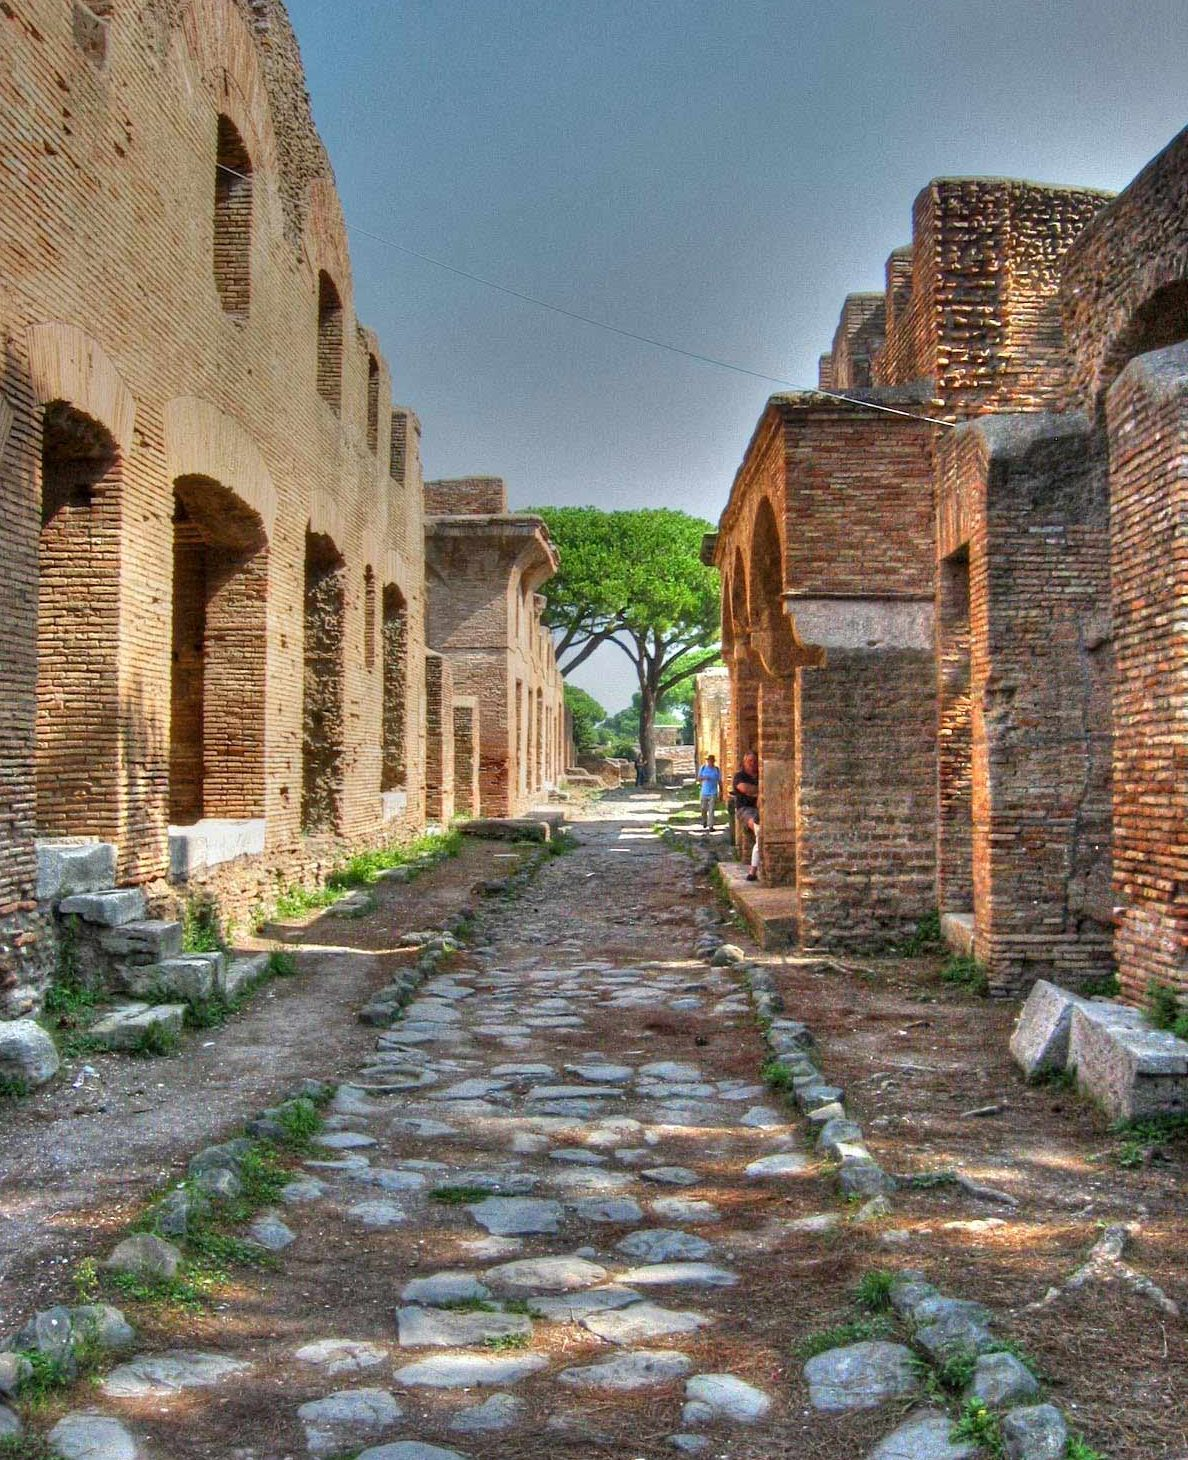 A road and apartment buildings in the ancient city of Ostia Antica